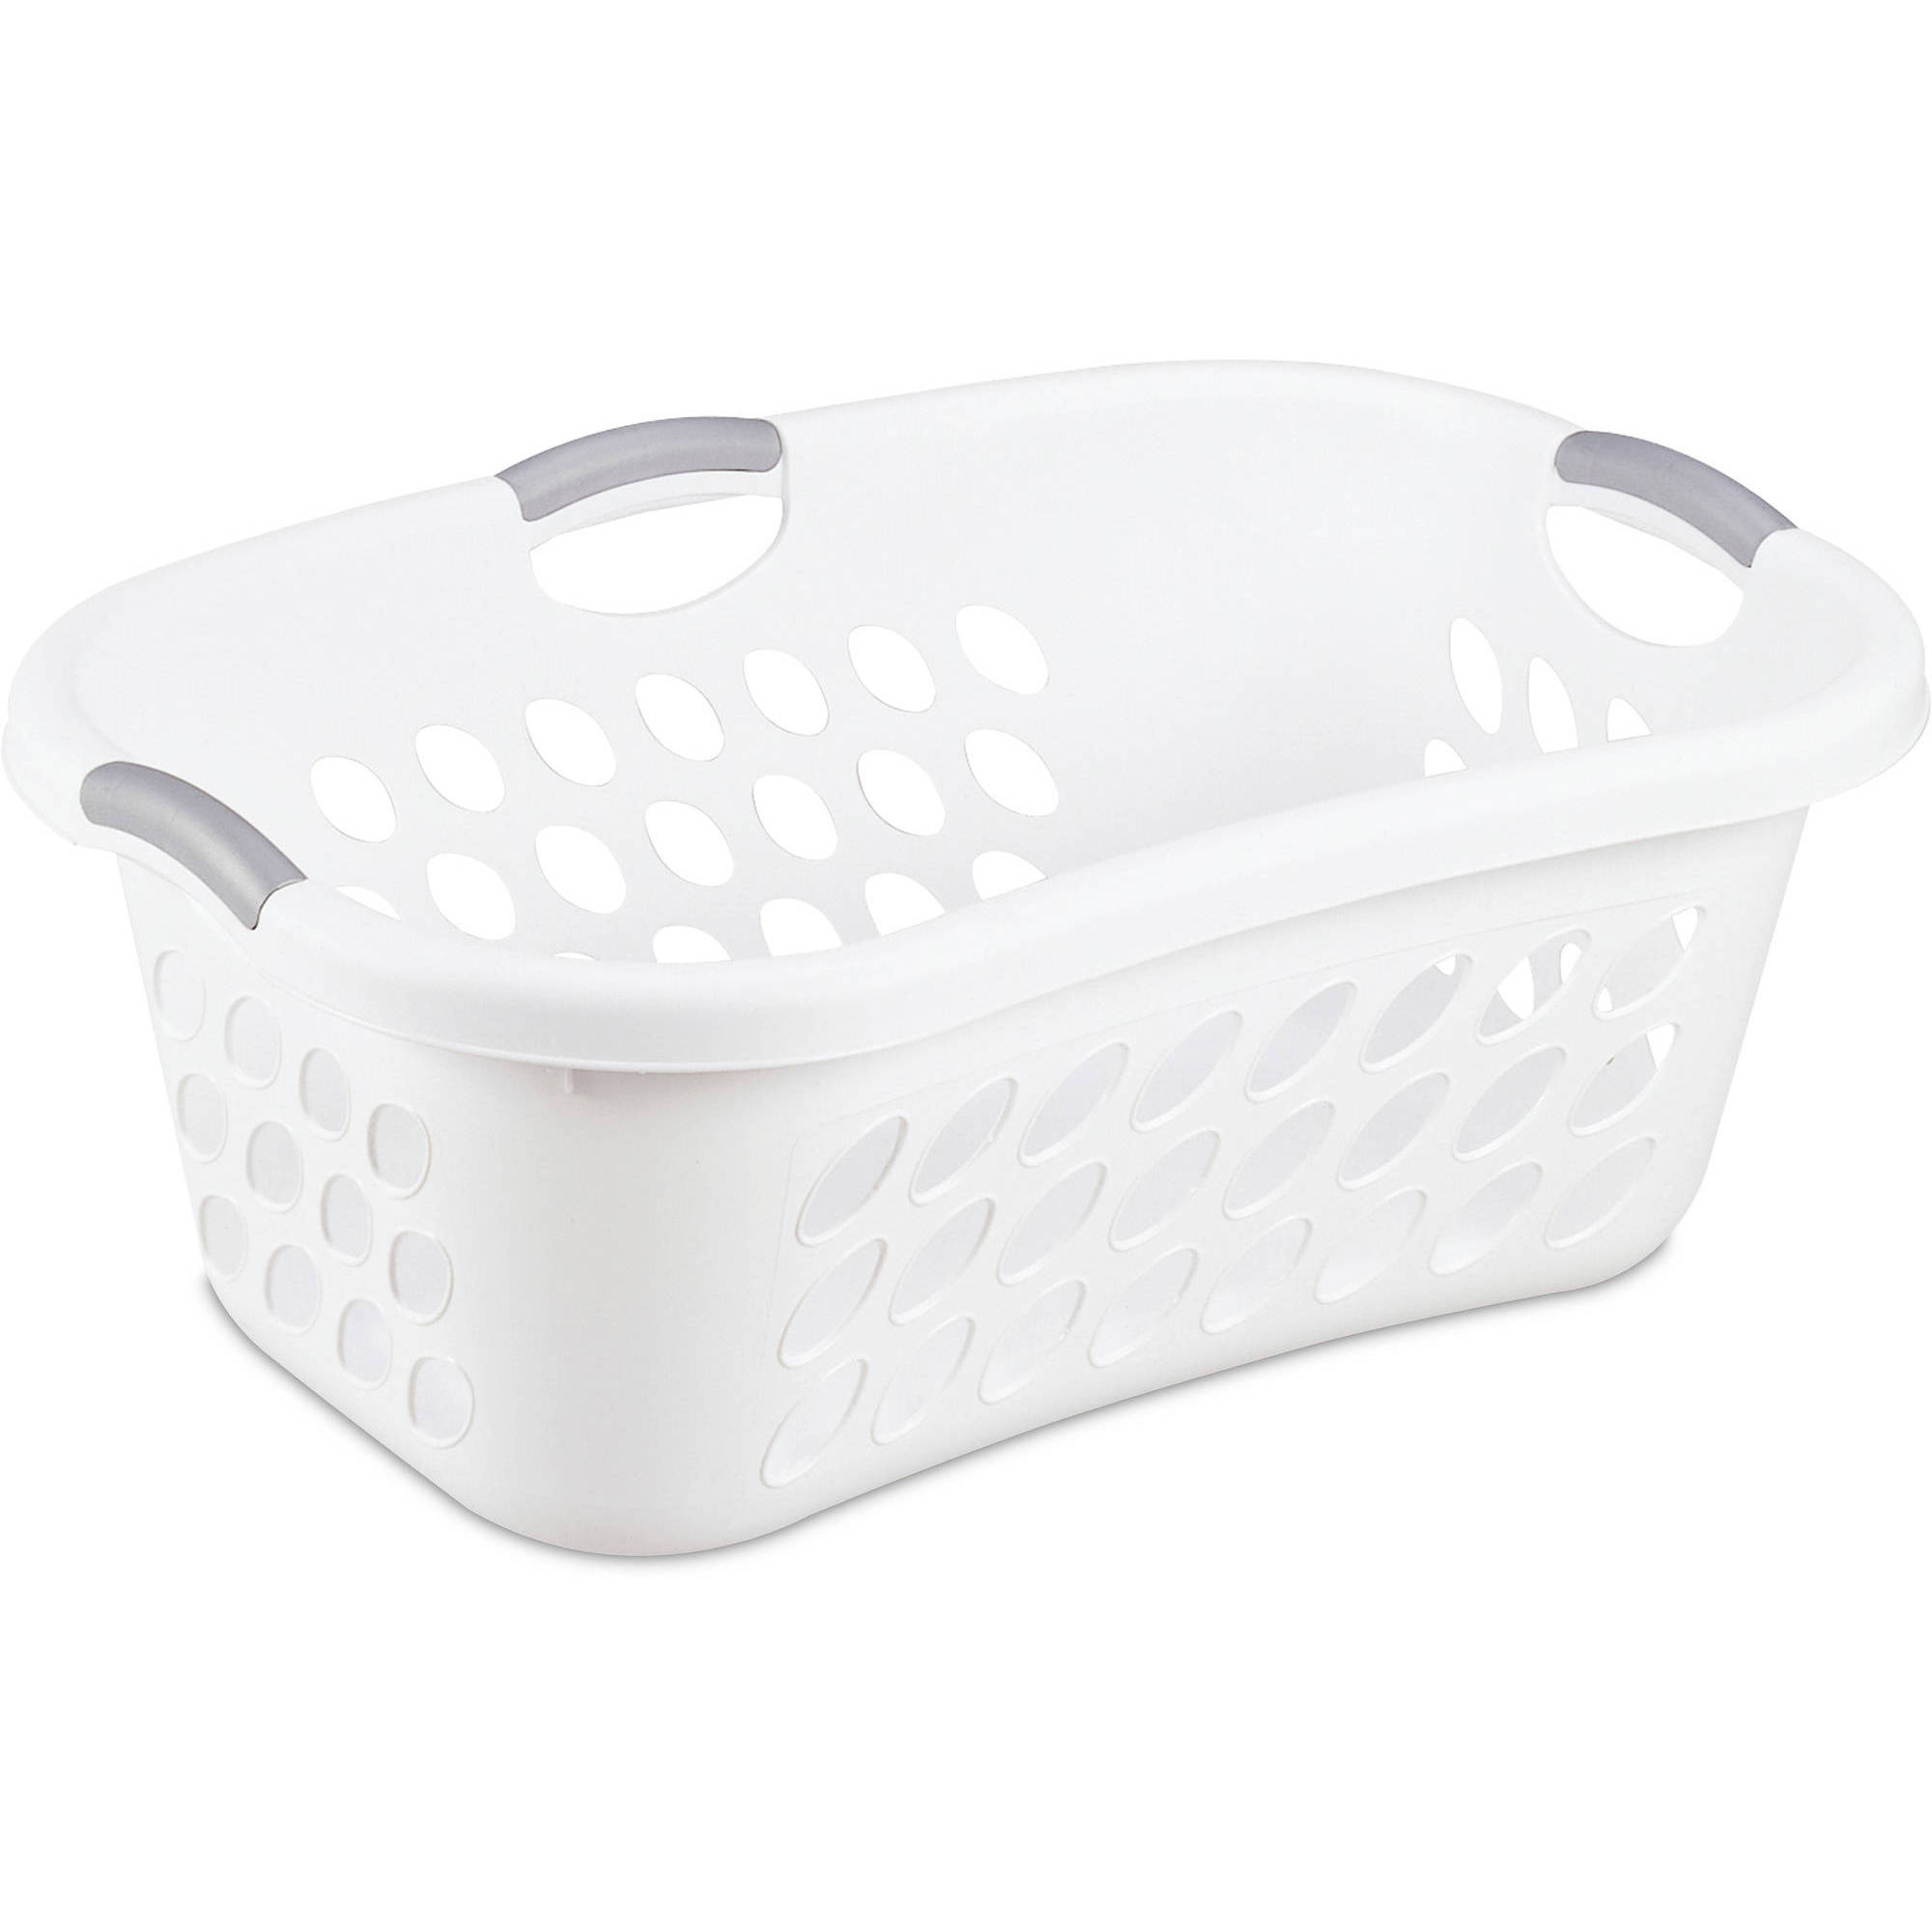 Sterilite 1.25 Bushel Hiphold Laundry Basket- White (Available in Case of 6 or Single Unit)